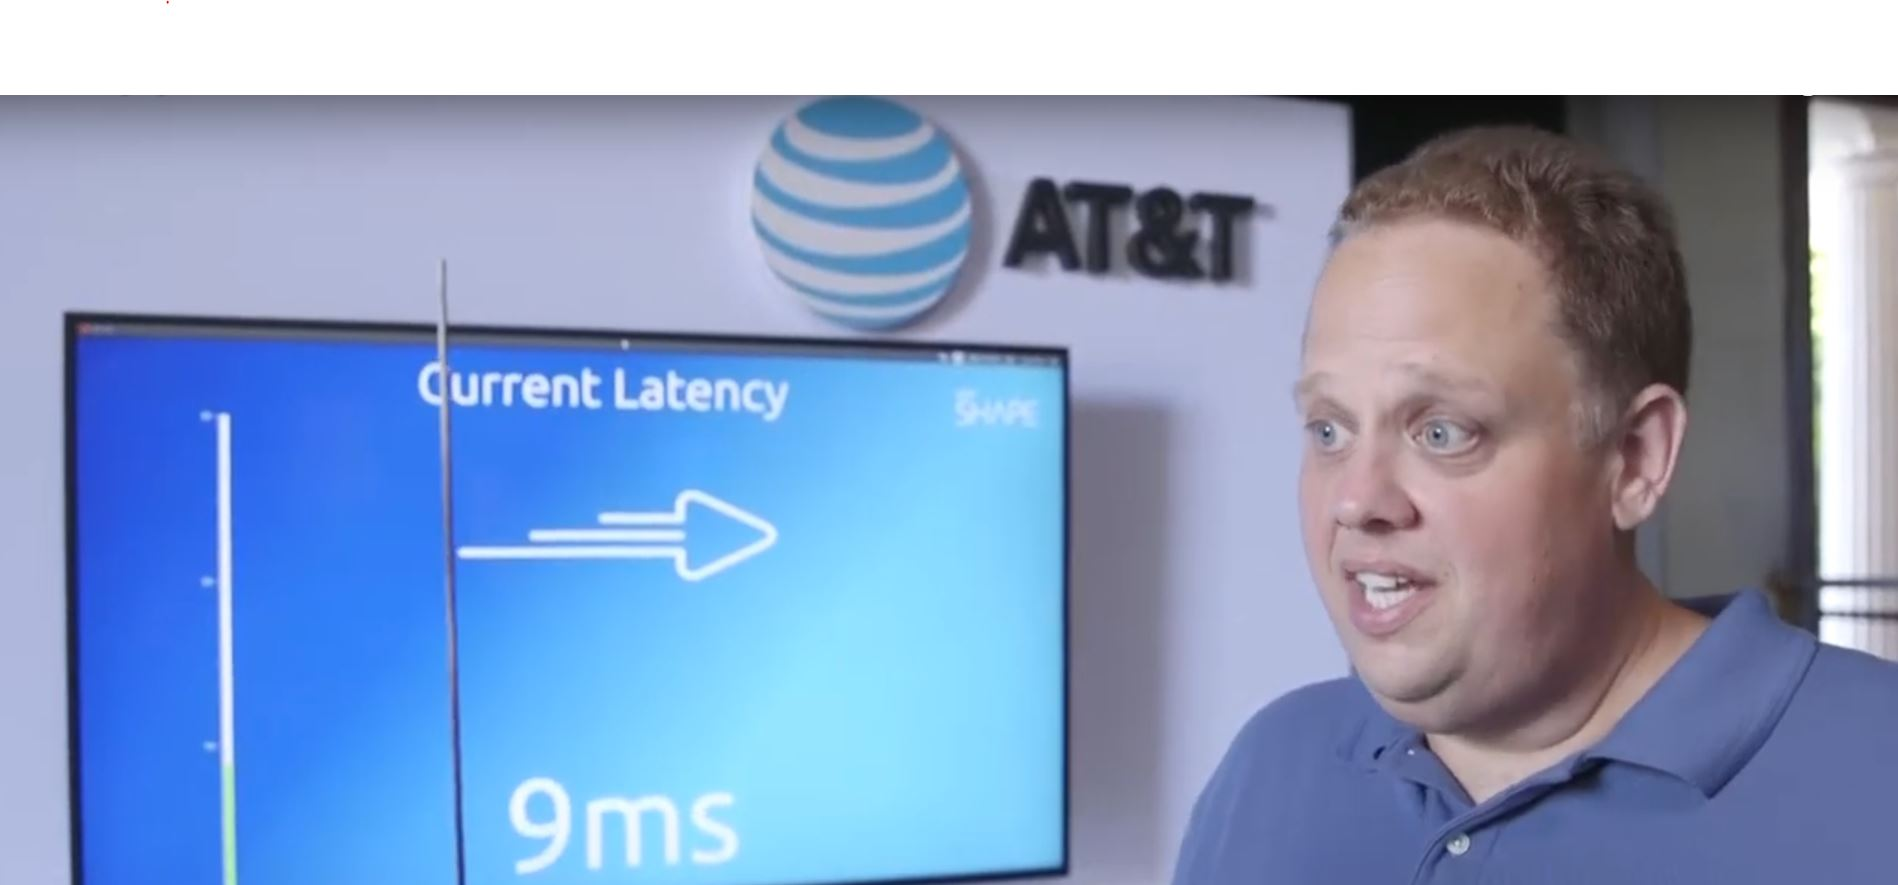 AT&T - 5G low latency demonstration